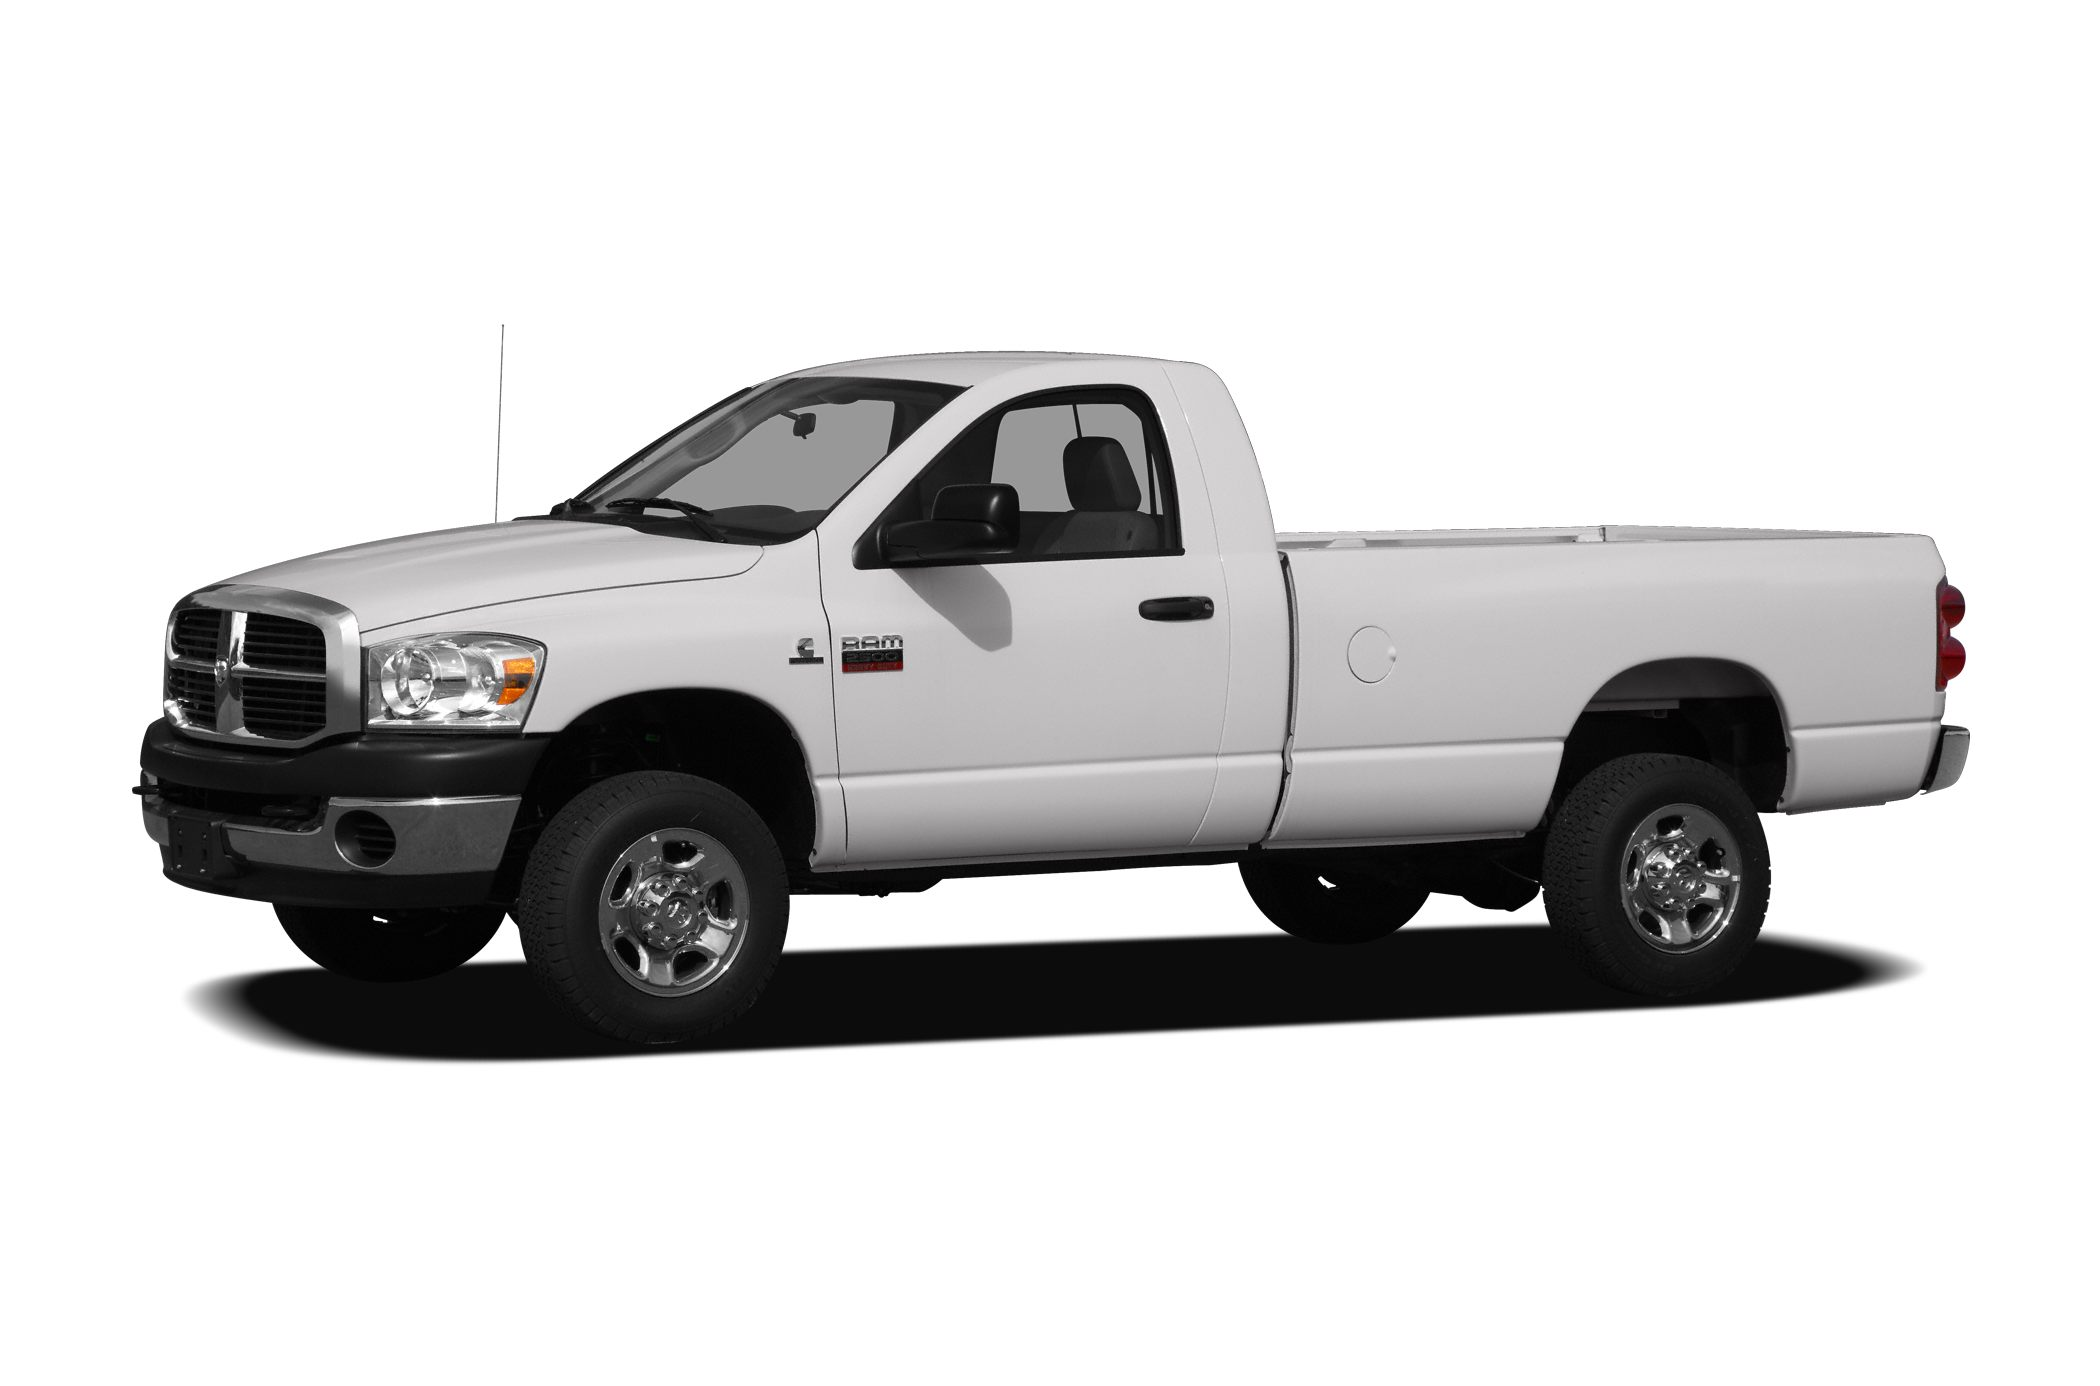 2008 Dodge Ram 2500 SLT Crew Cab Pickup for sale in Yuba City for $21,988 with 213,046 miles